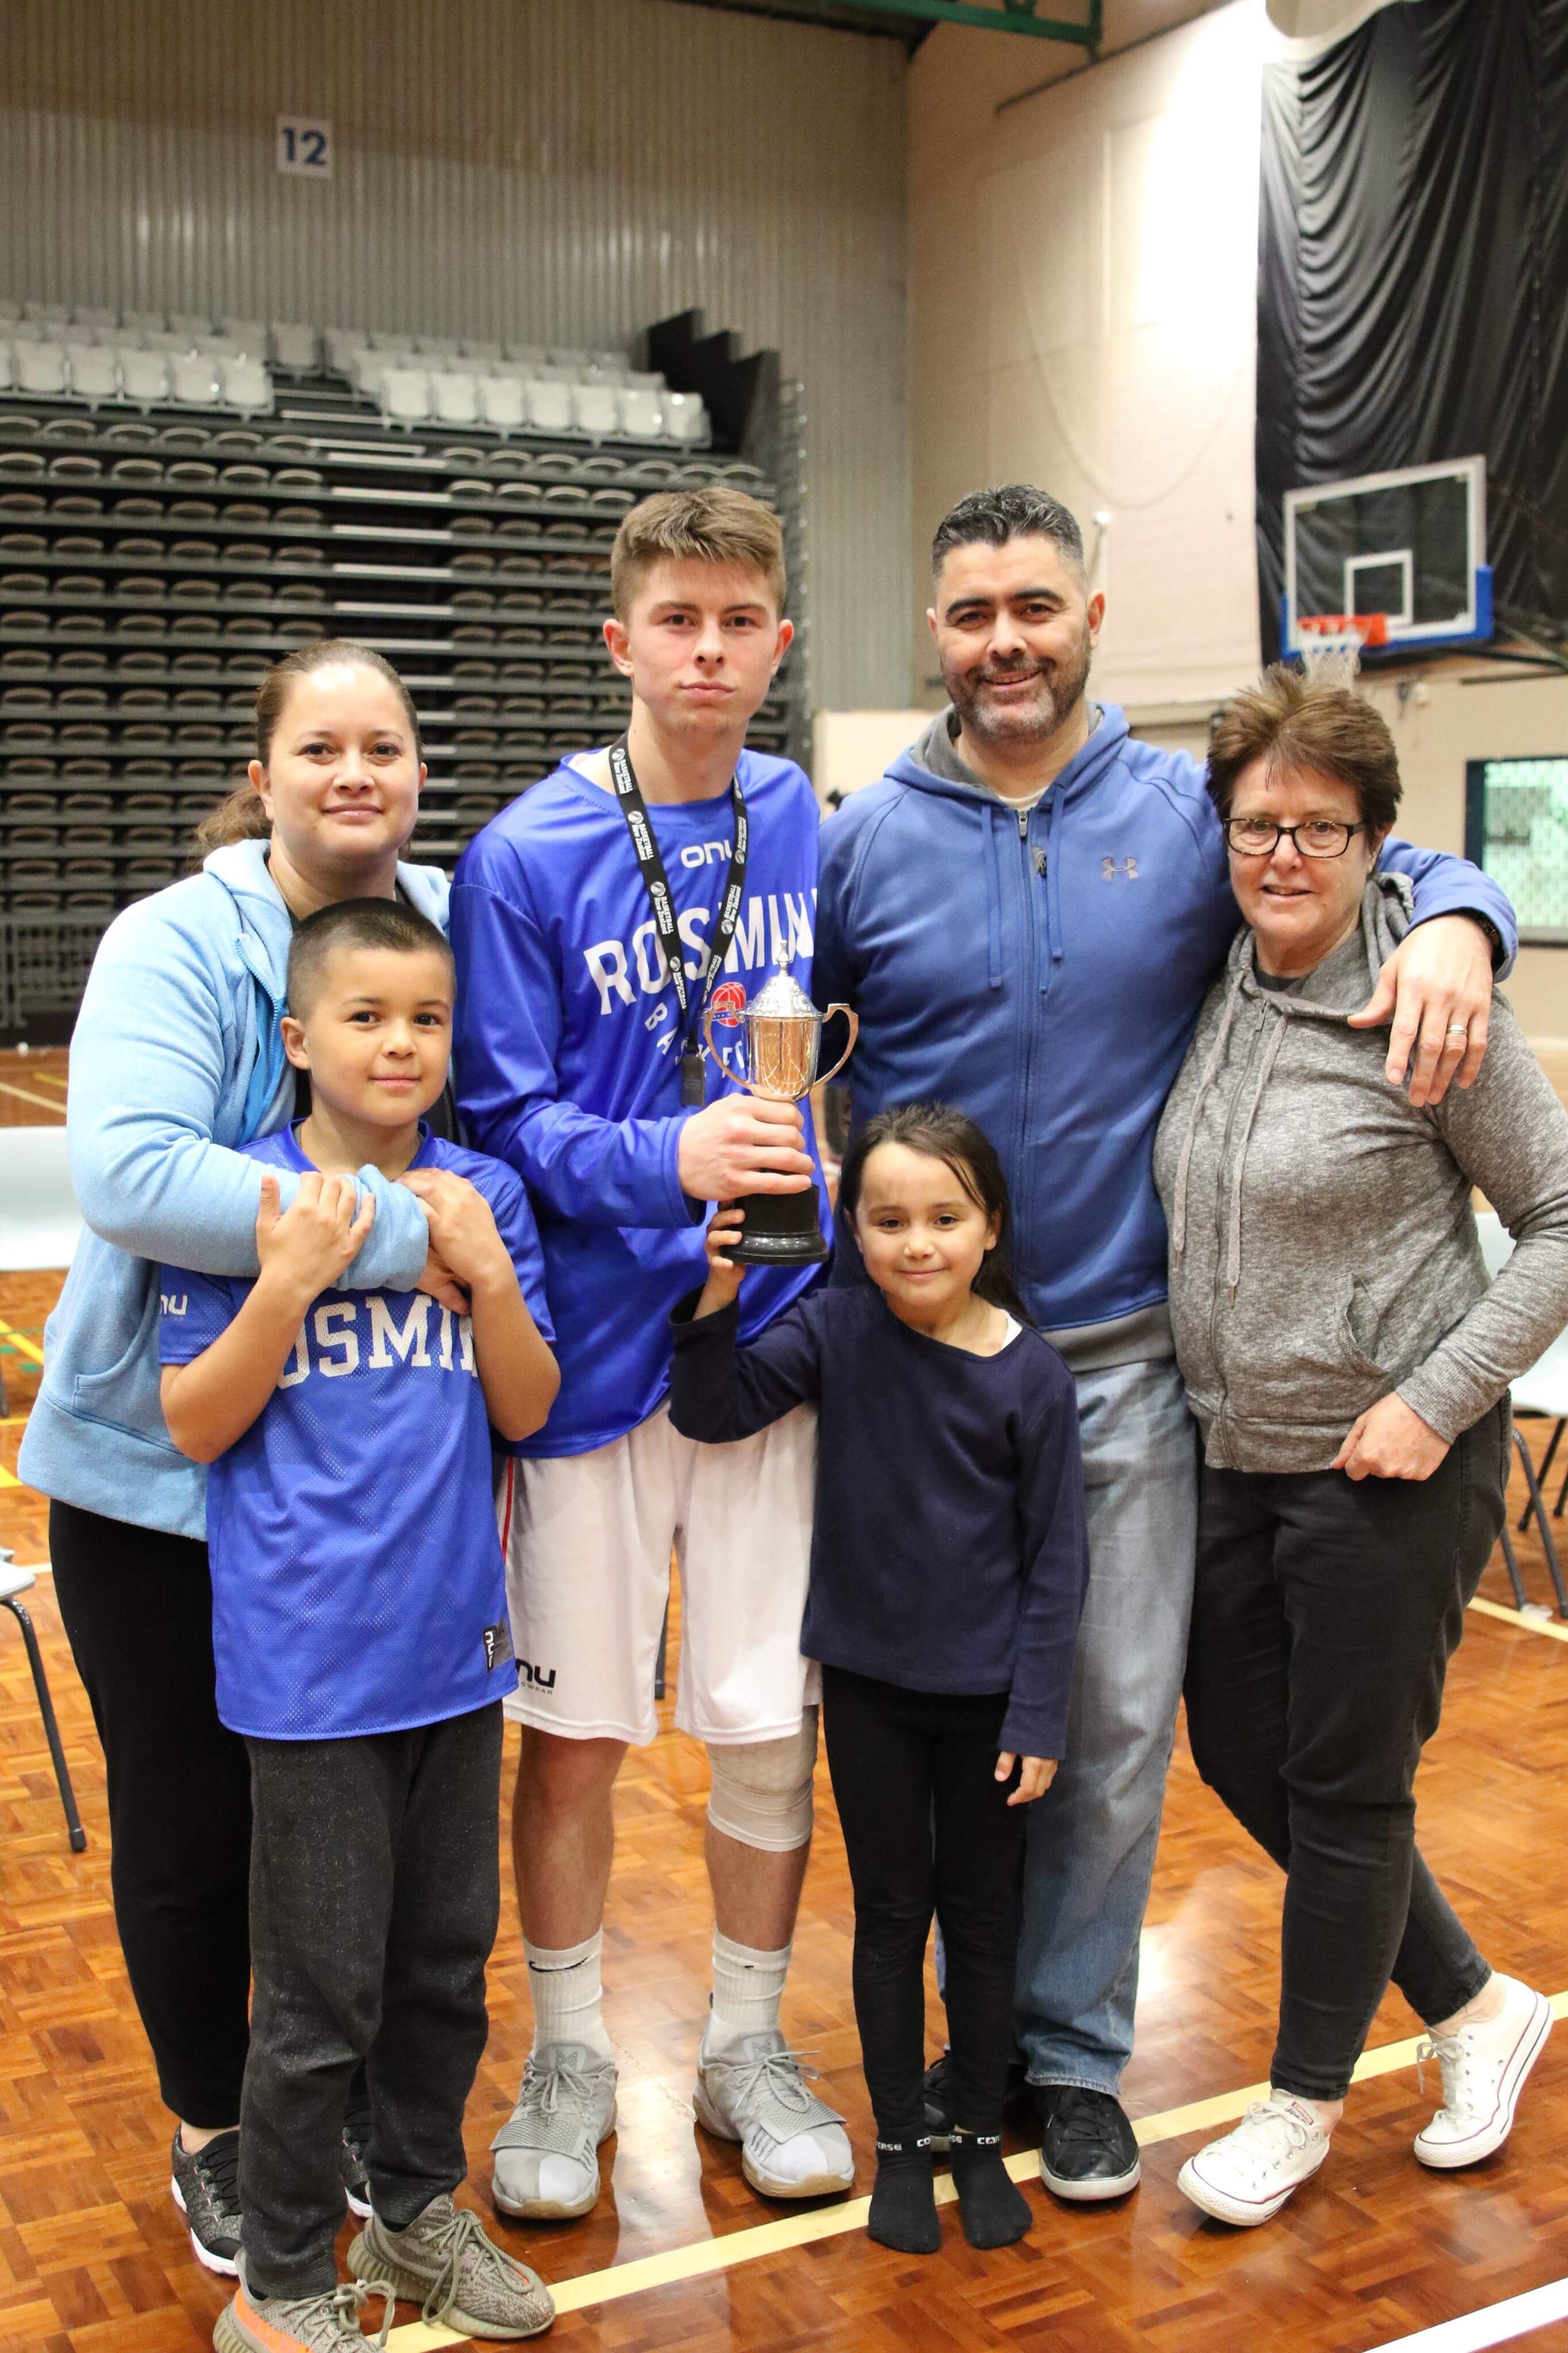 Kainoa with his family, holding a trophy